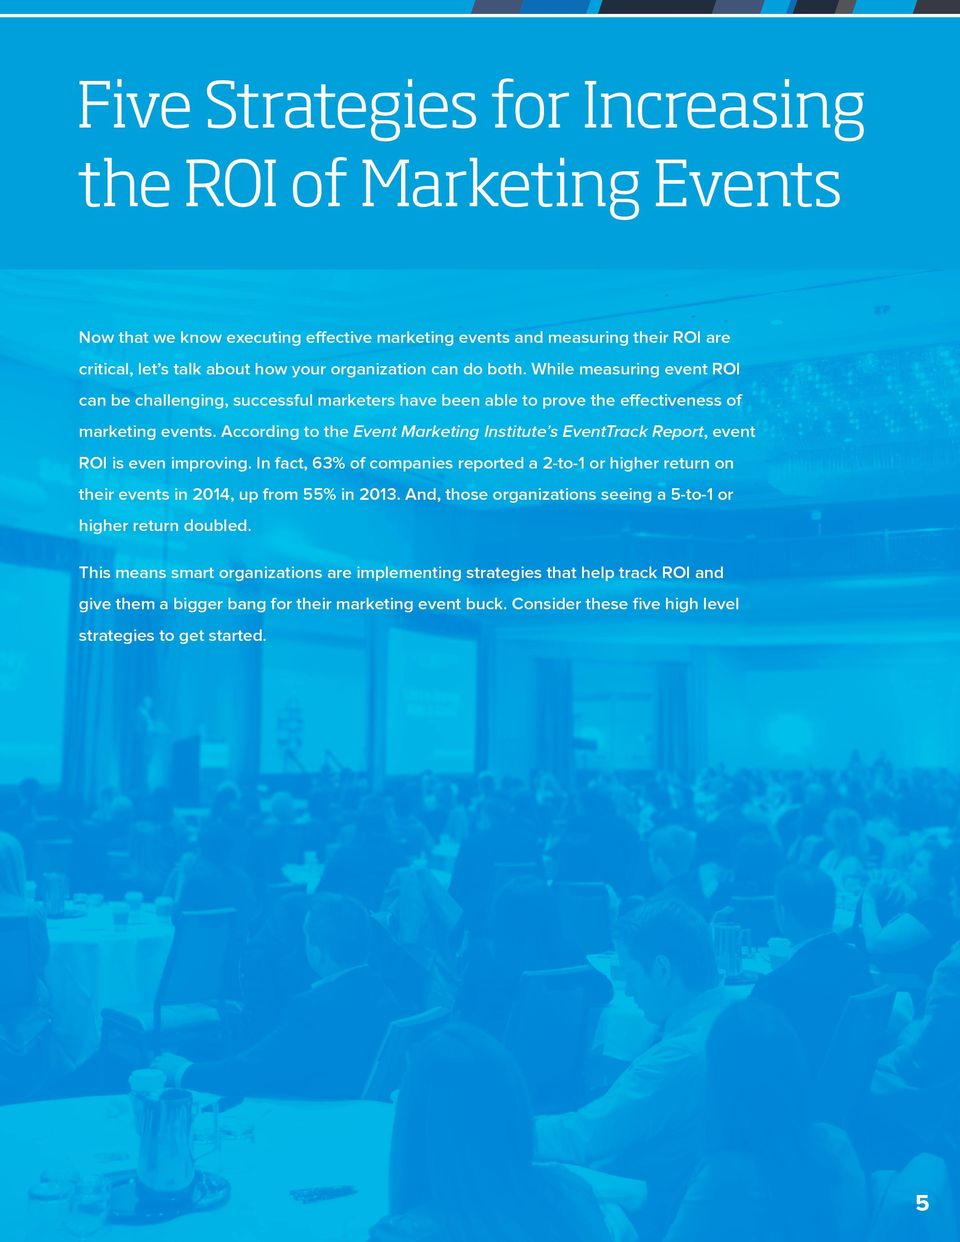 According to the Event Marketing Institute s EventTrack Report, event ROI is even improving. In fact, 63% of companies reported a 2-to-1 or higher return on their events in 2014, up from 55% in 2013.